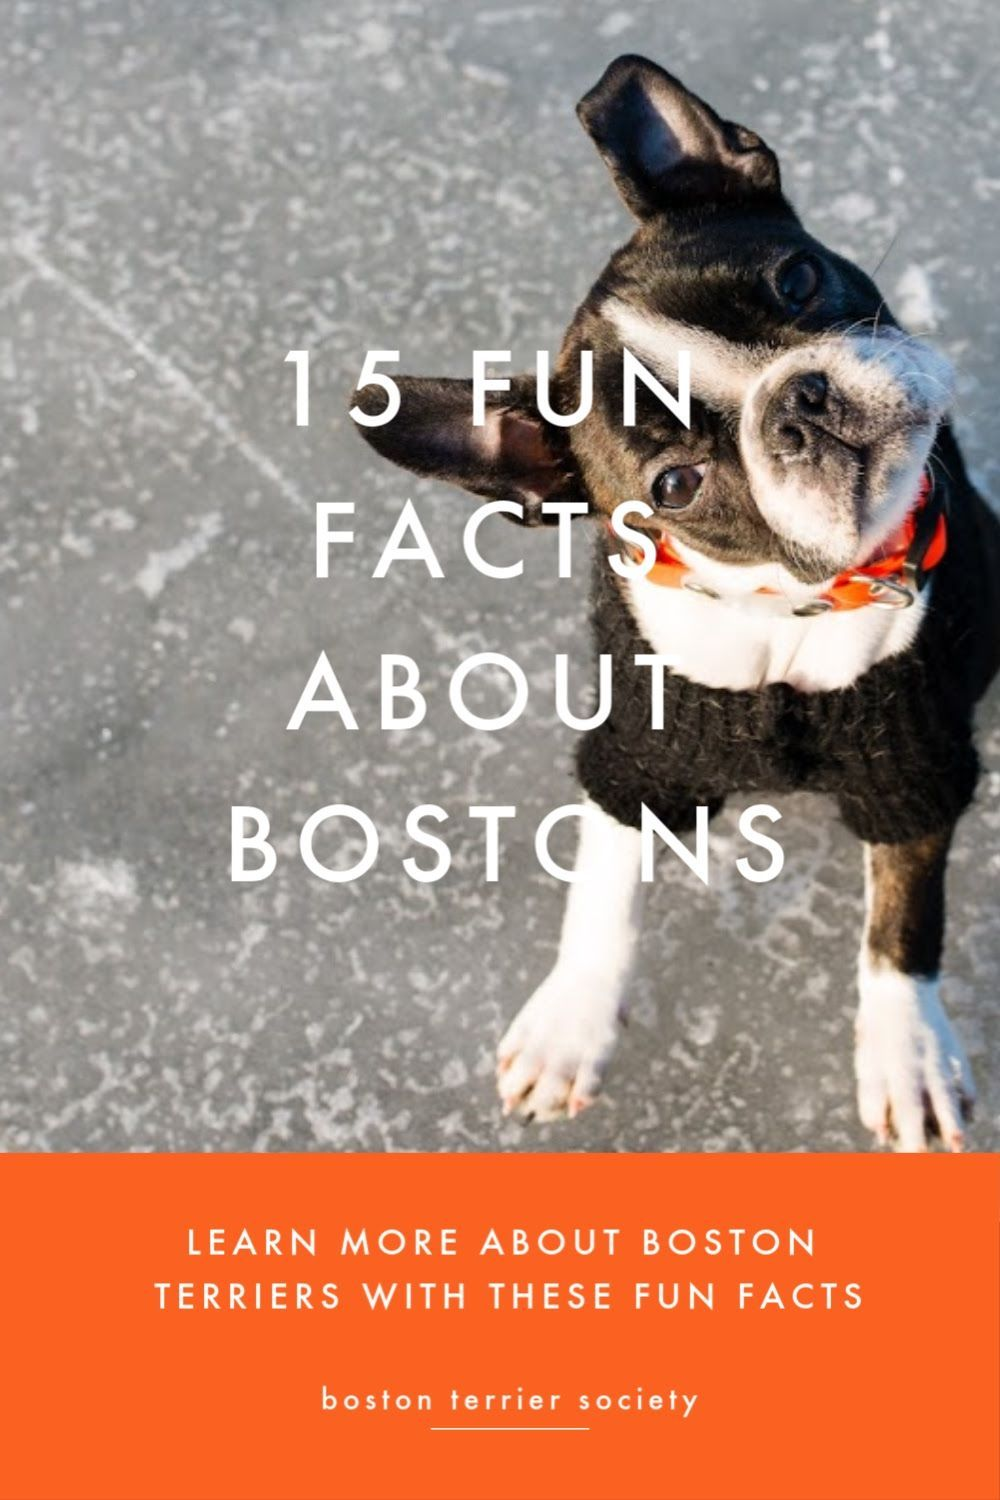 15 Interesting Facts About Boston Terriers In 2020 Boston Terrier Boston Terrier Funny Boston Terrier Lover